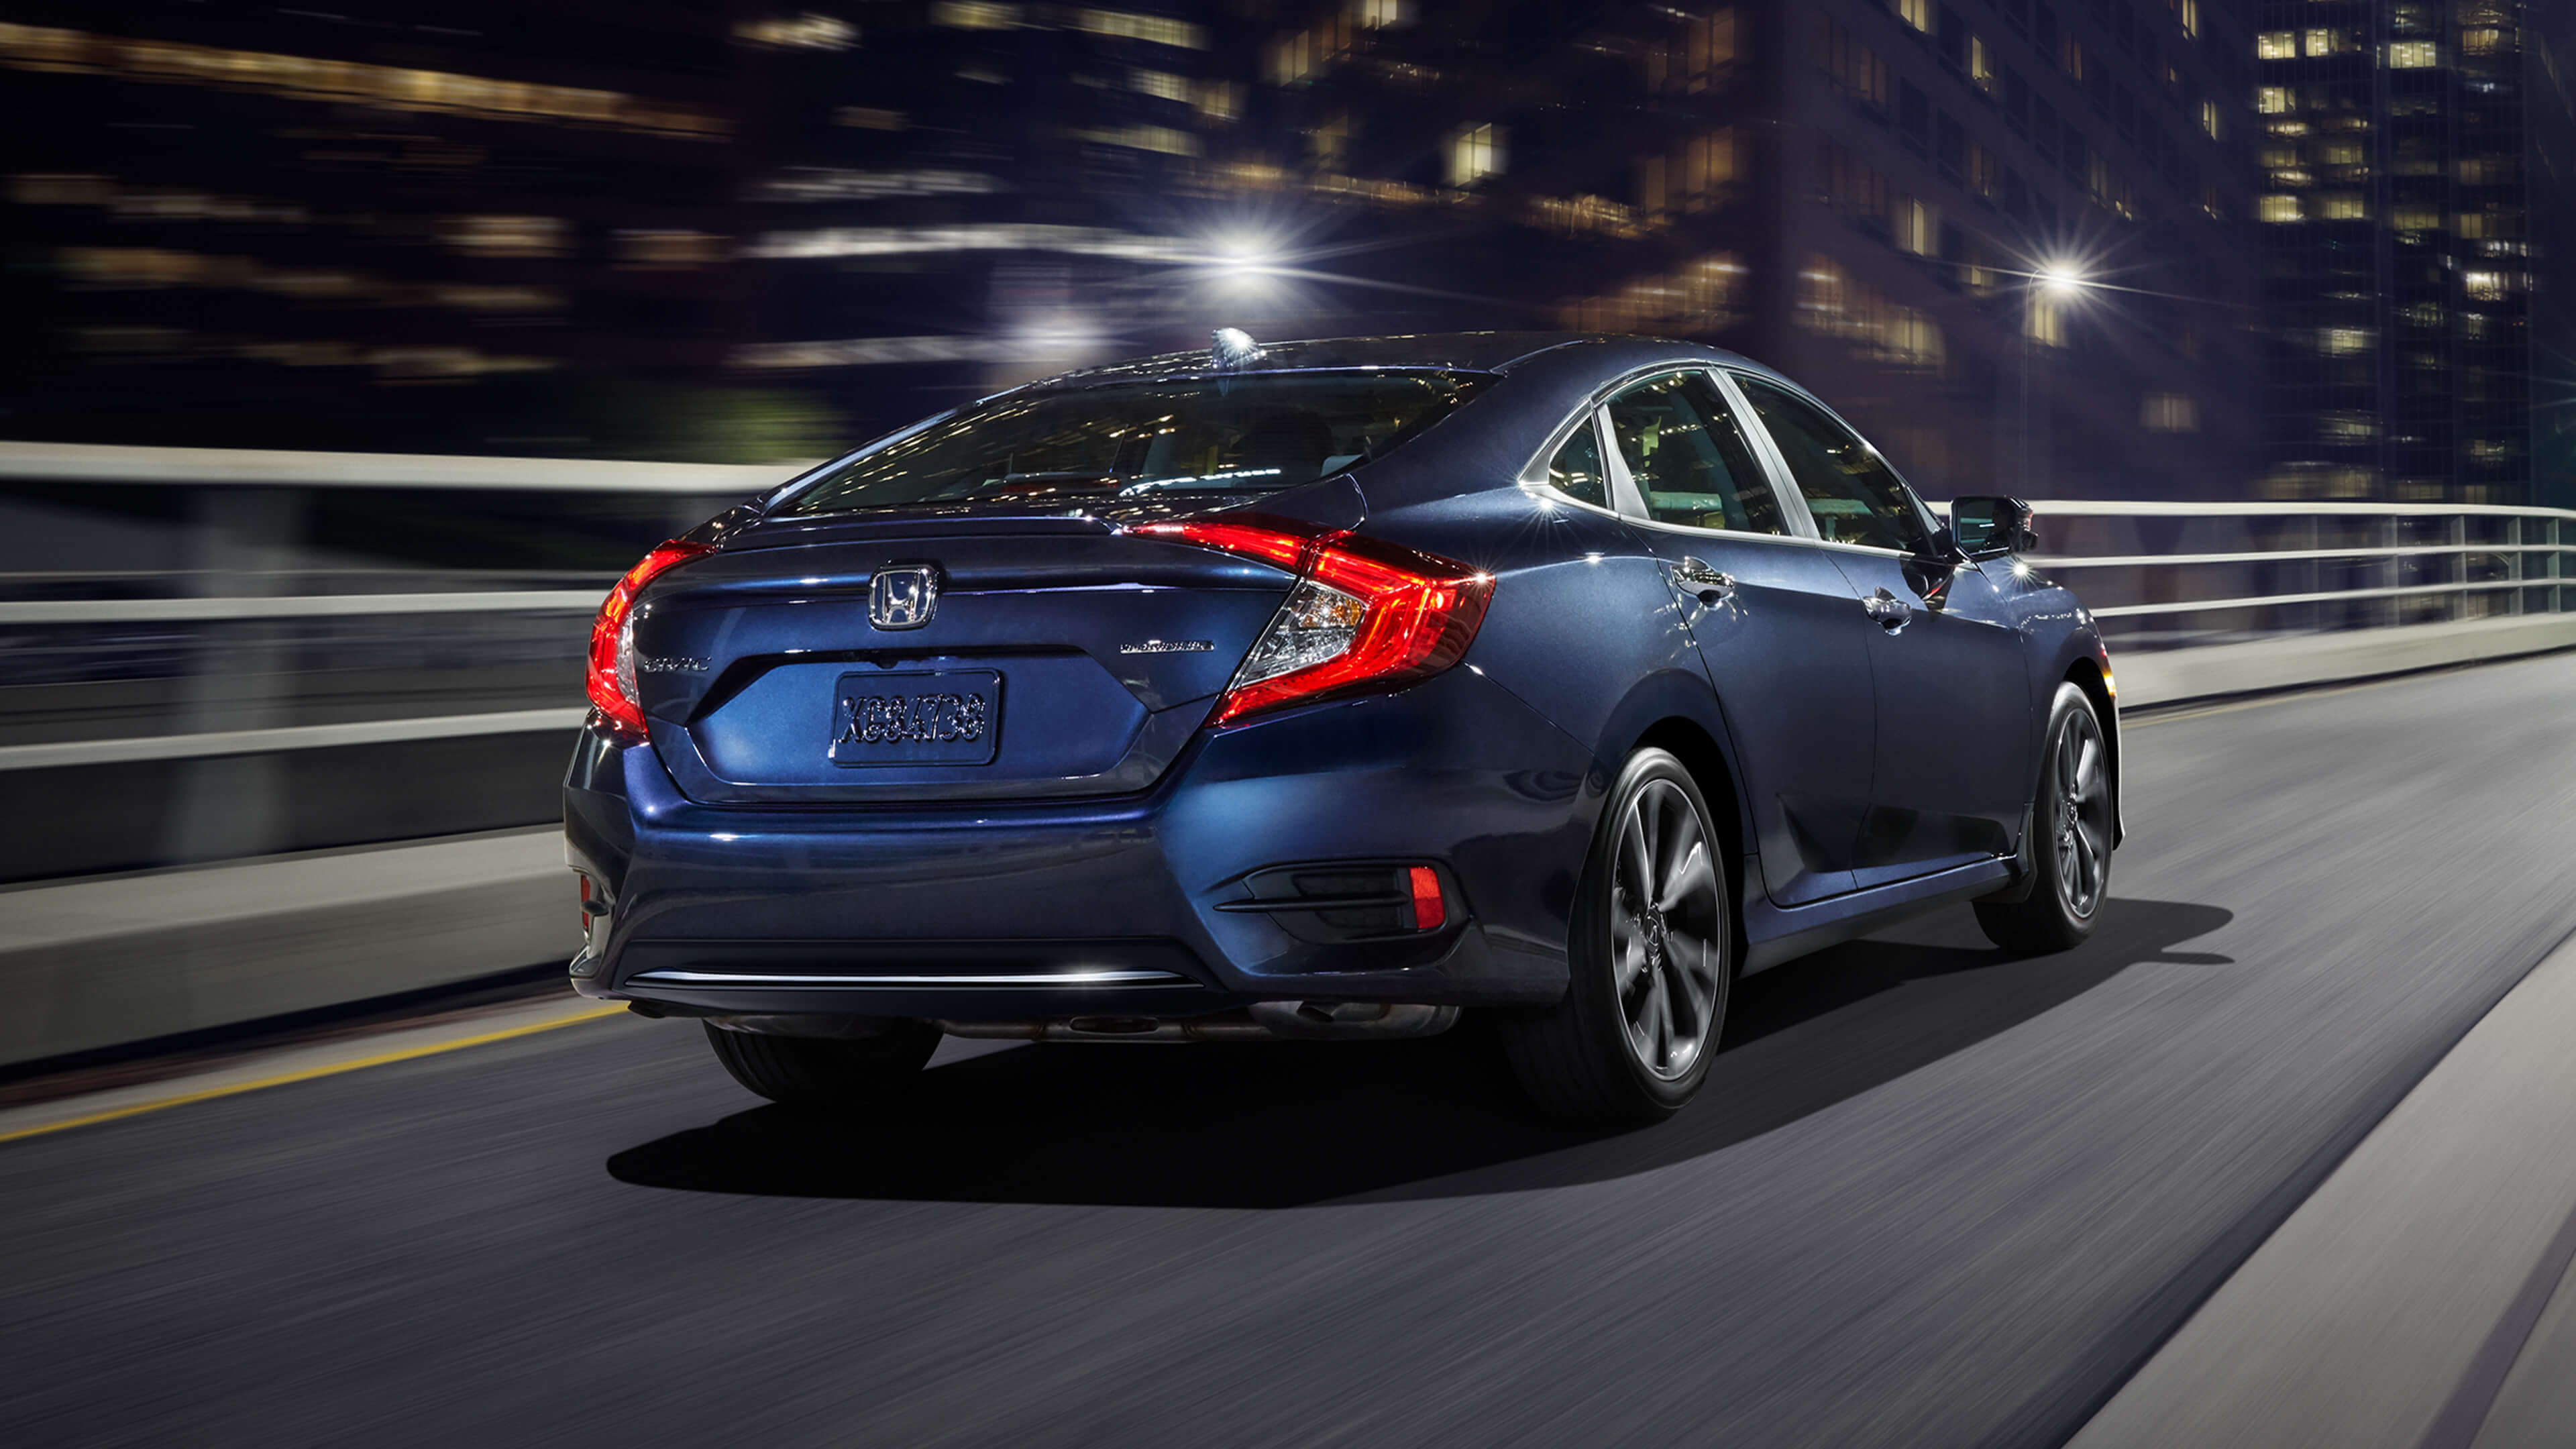 Honda Paint Recall >> 2019 Honda Civic Sedan - Cranbrook Honda Dealership ...